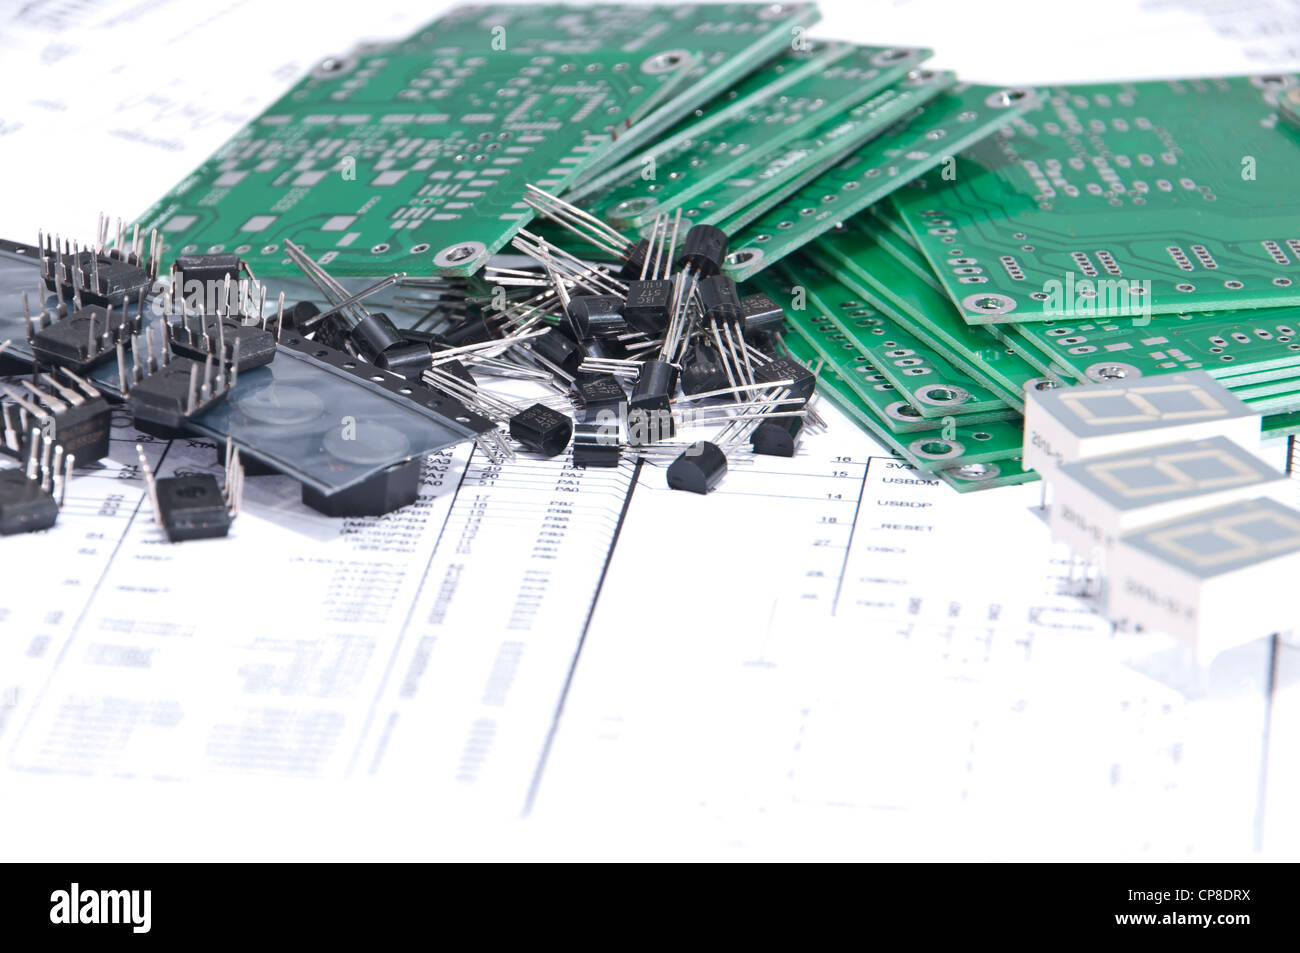 Circuit Boards And Electronic Components With Schematics In